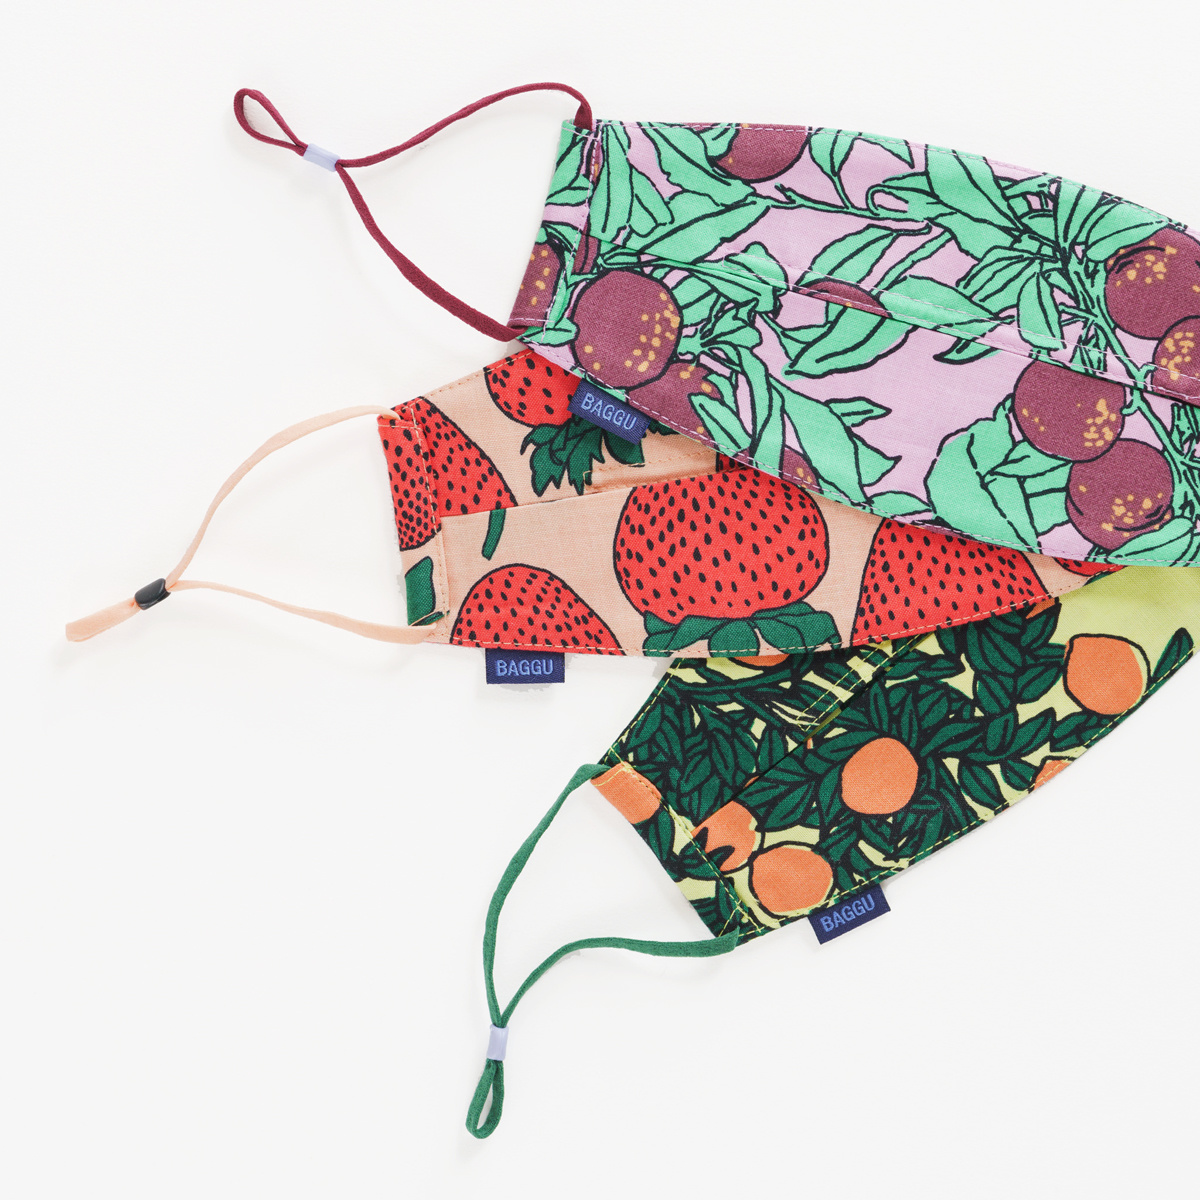 Baggu - BA Baggu - Backyard Fruit Adjustable Mask,